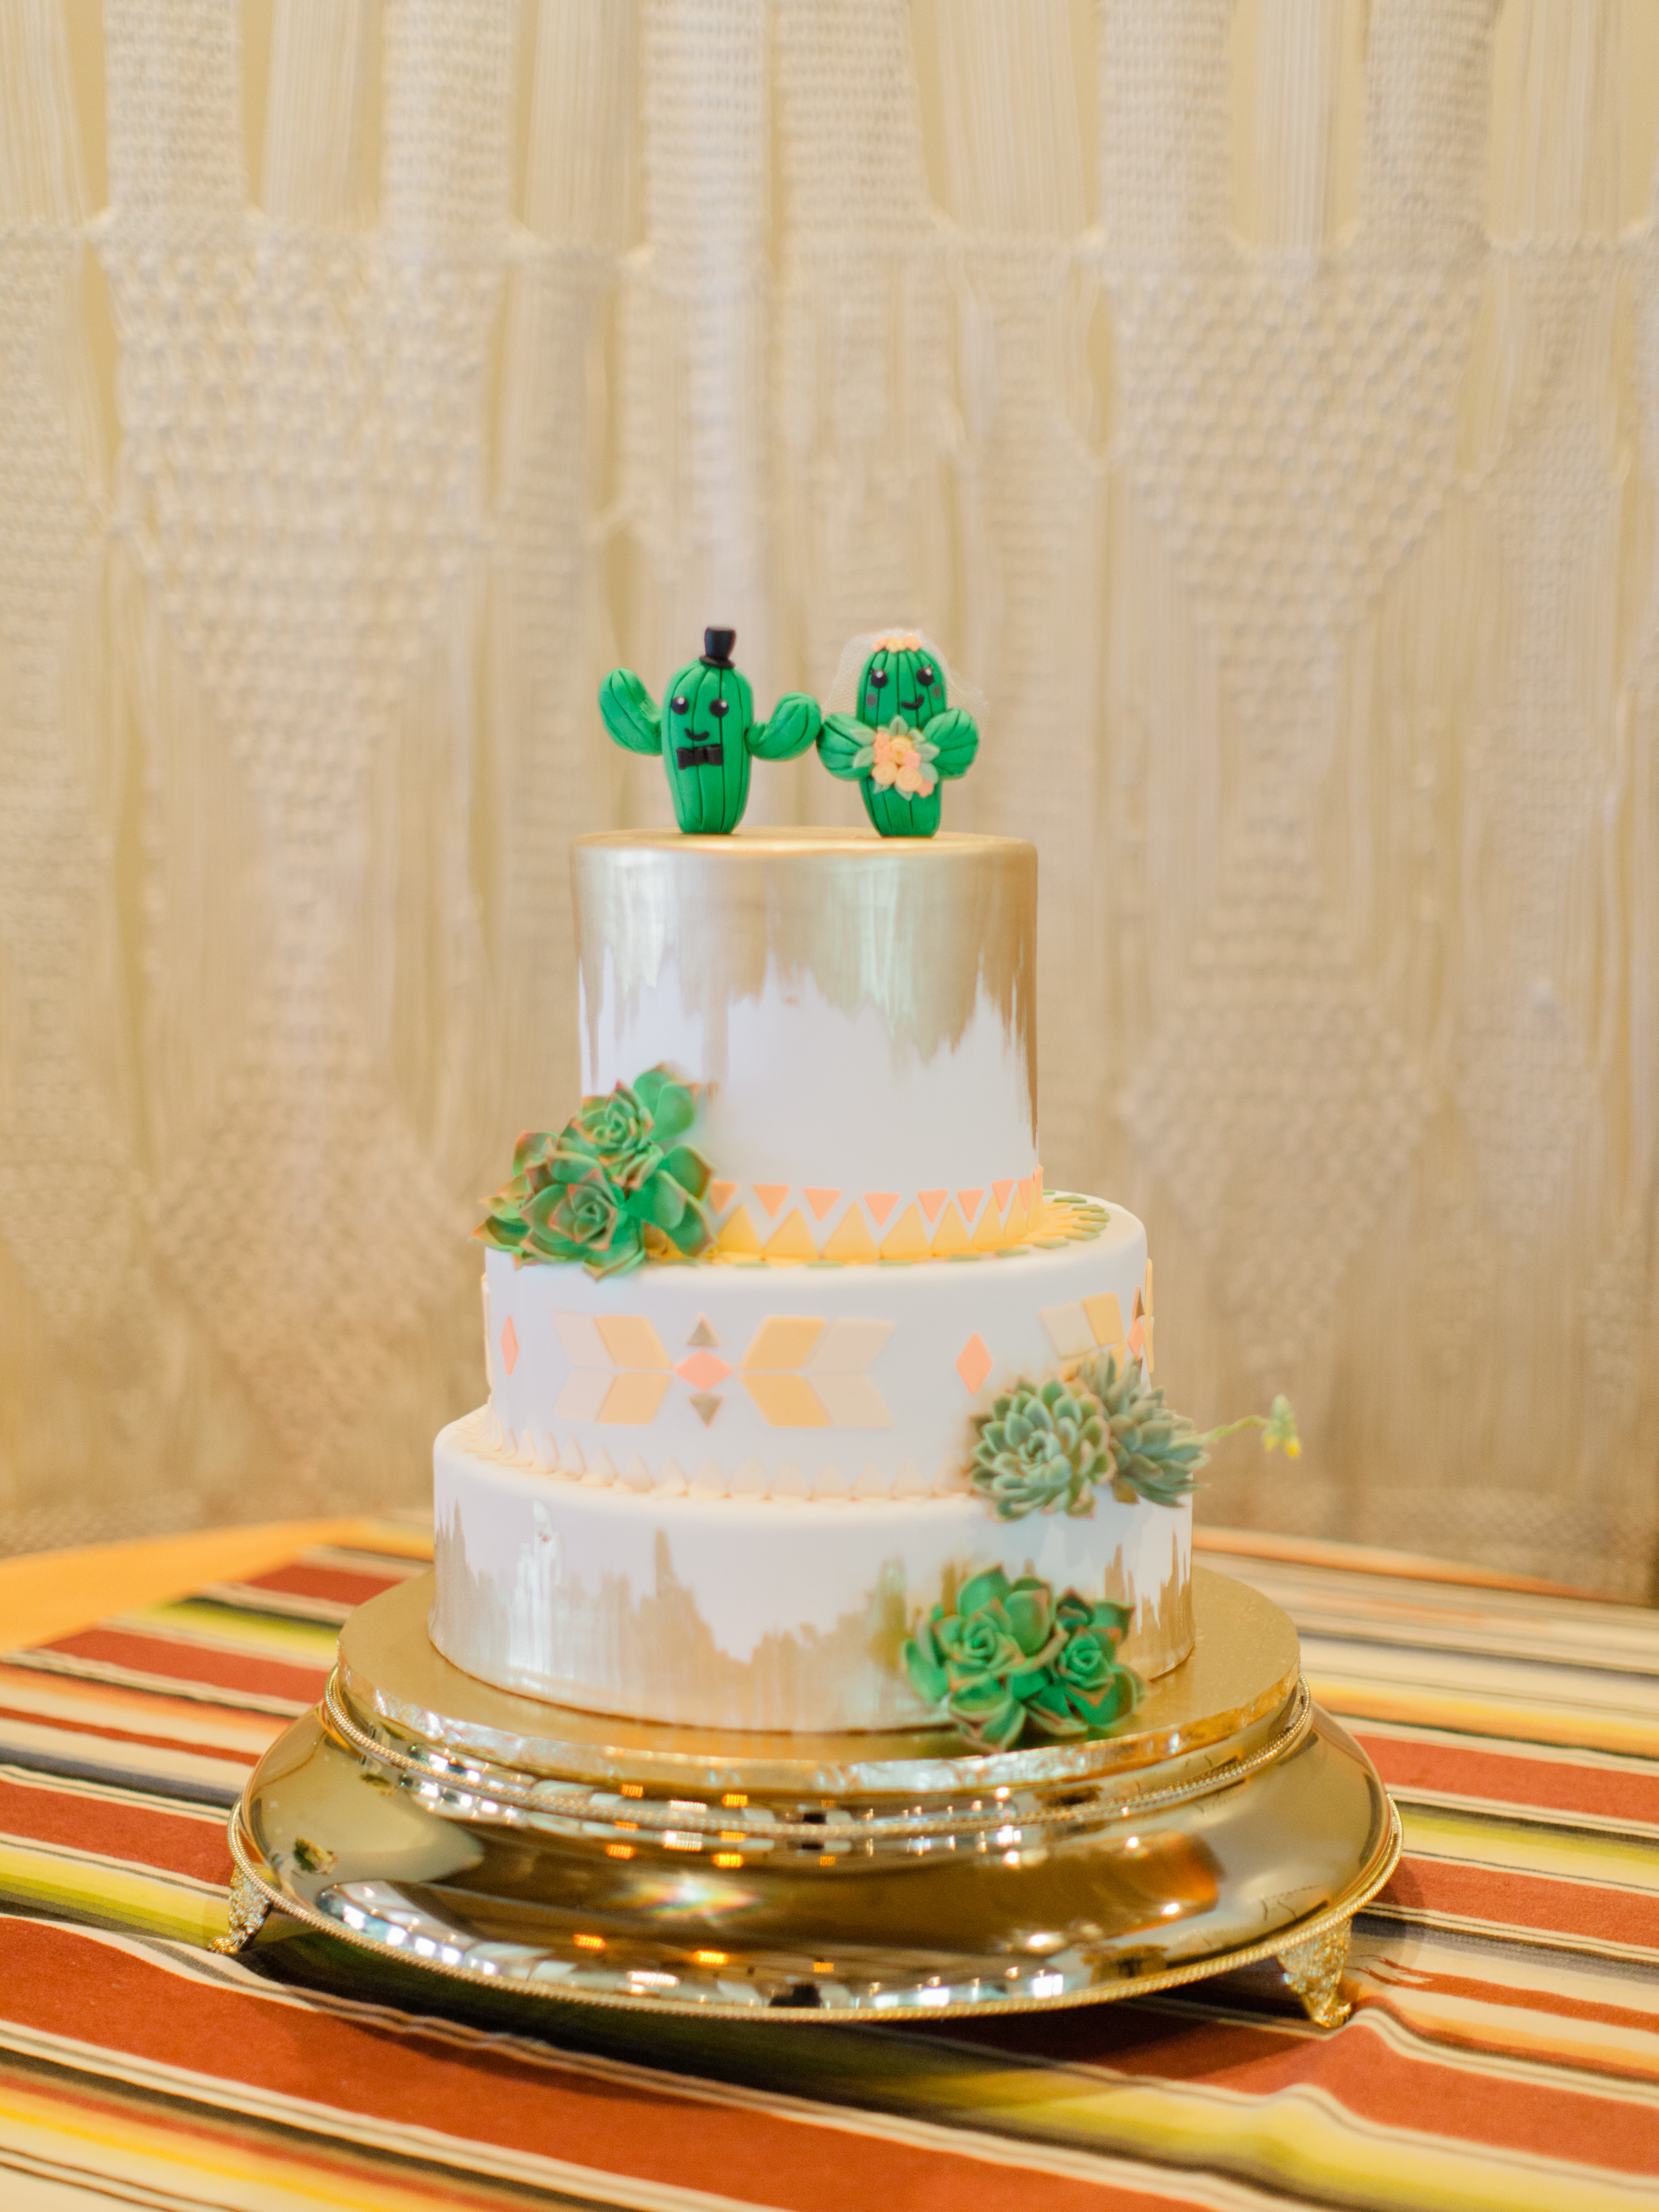 This 2Tarts cake and our macrame backdrop go together like peanut butter and jelly! Am I right?